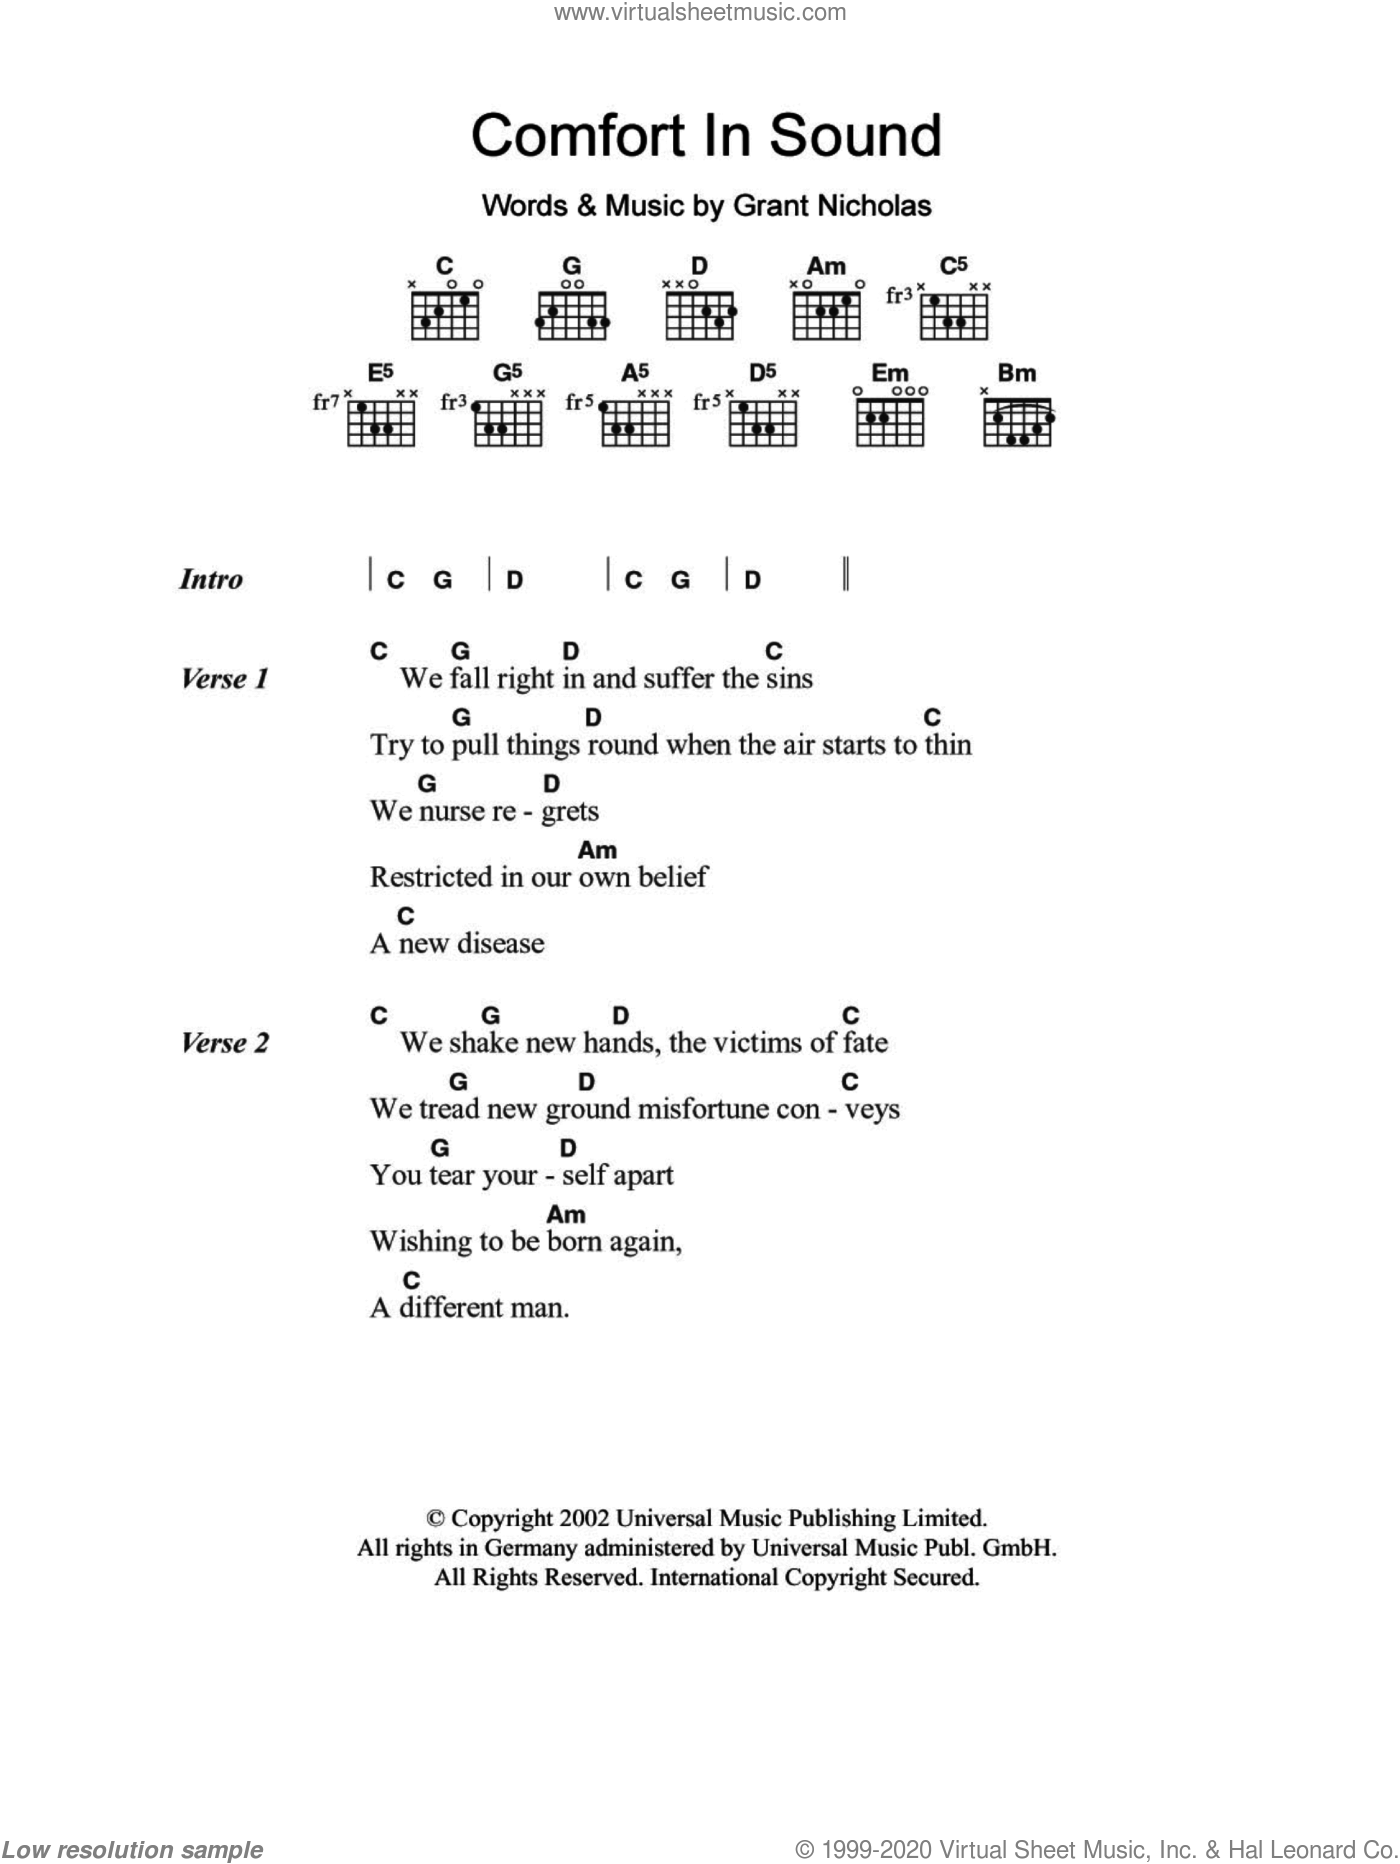 Comfort In Sound sheet music for guitar (chords) by Grant Nicholas